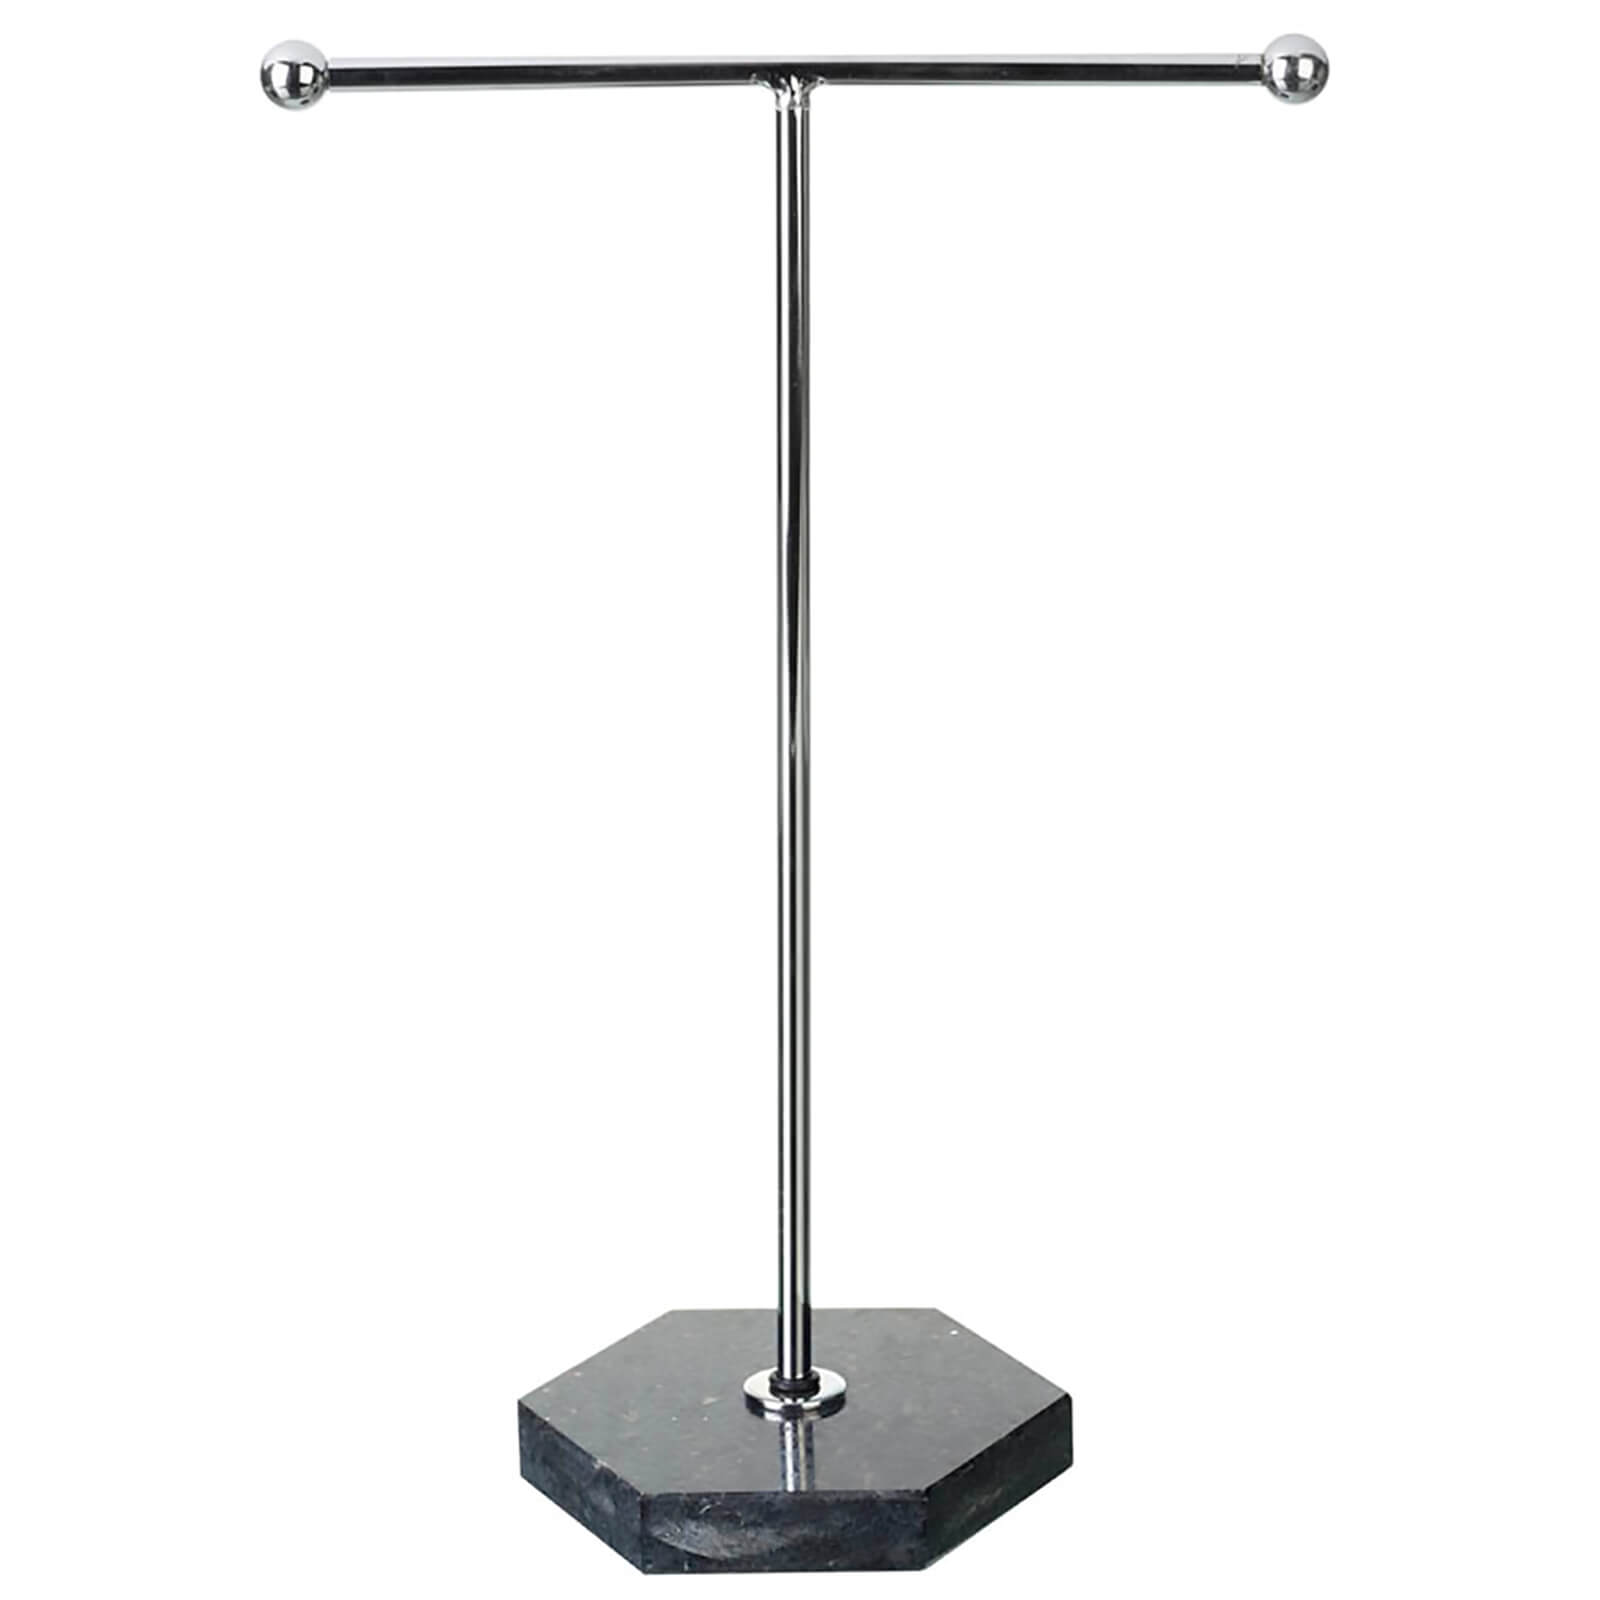 Parlane Tarina Jewellery Stand (26cm) - Silver